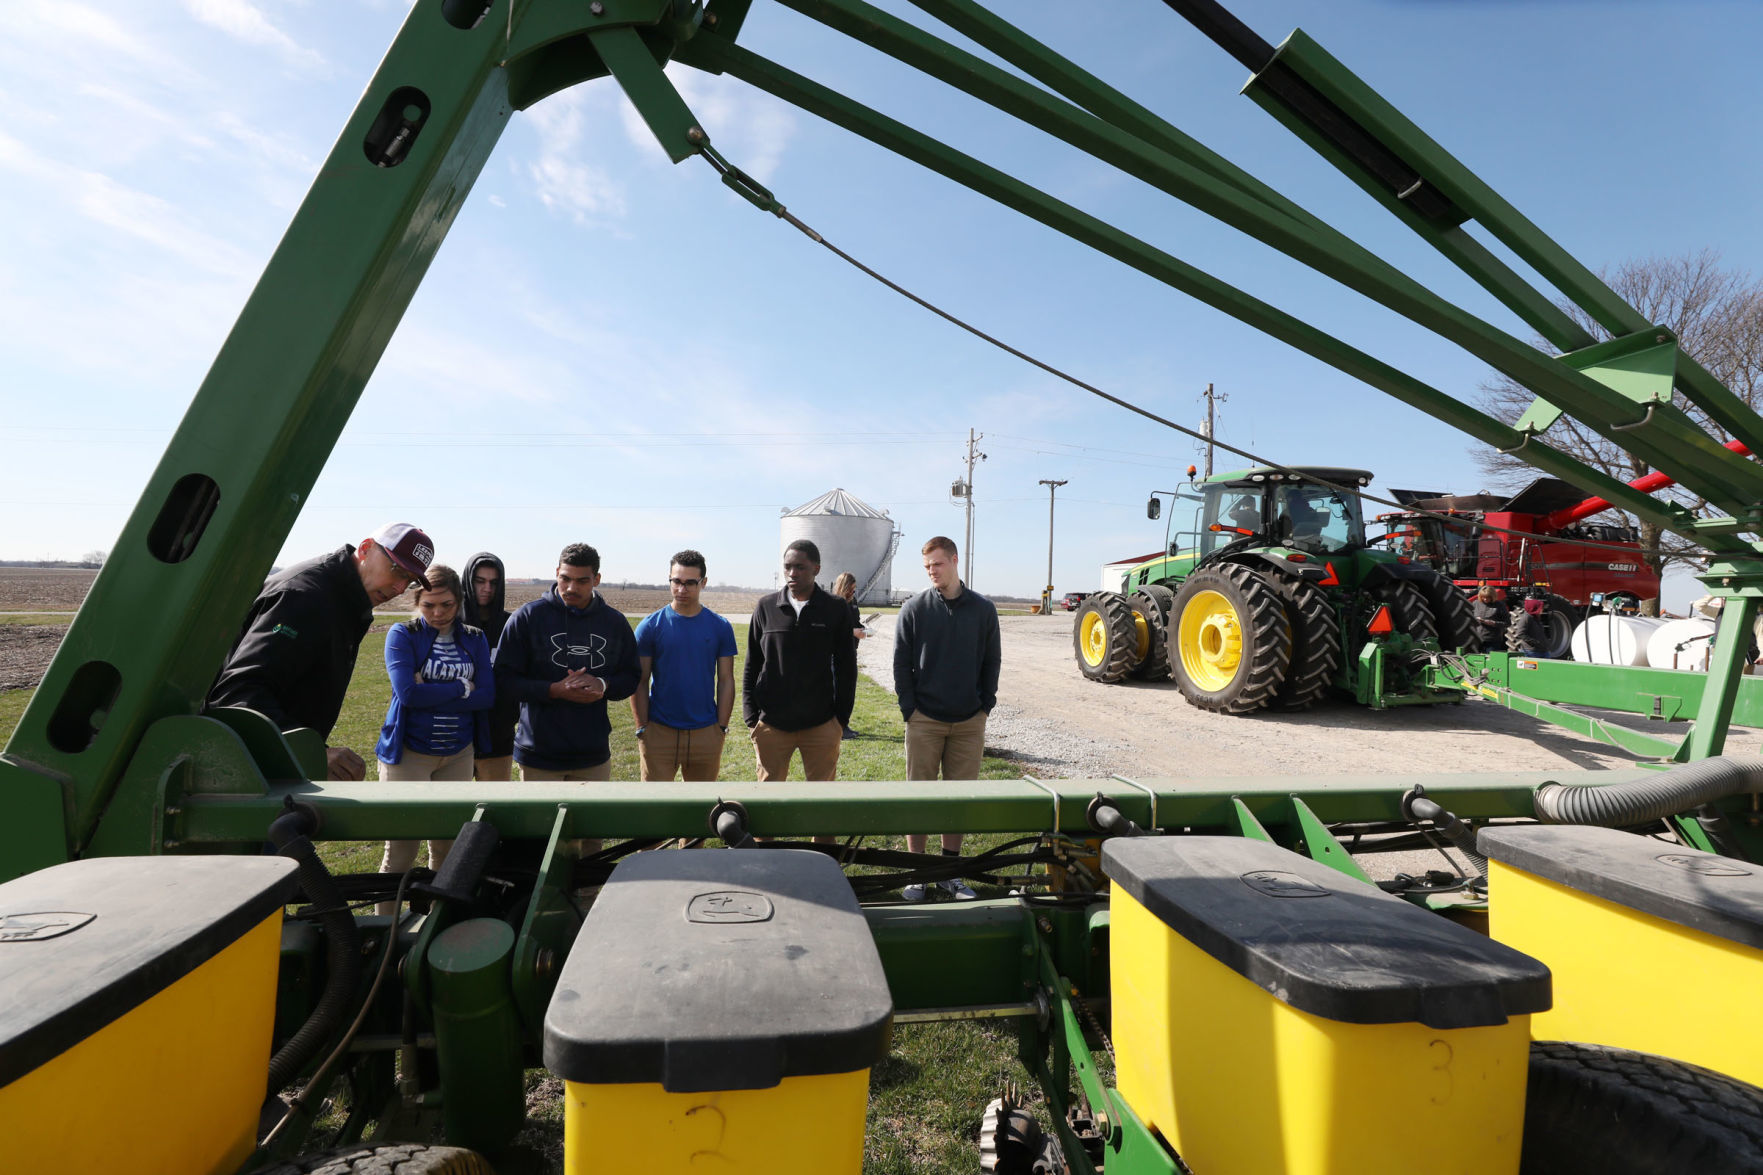 Fertile ground: Decatur high school ag academy students spend their day down on the farm